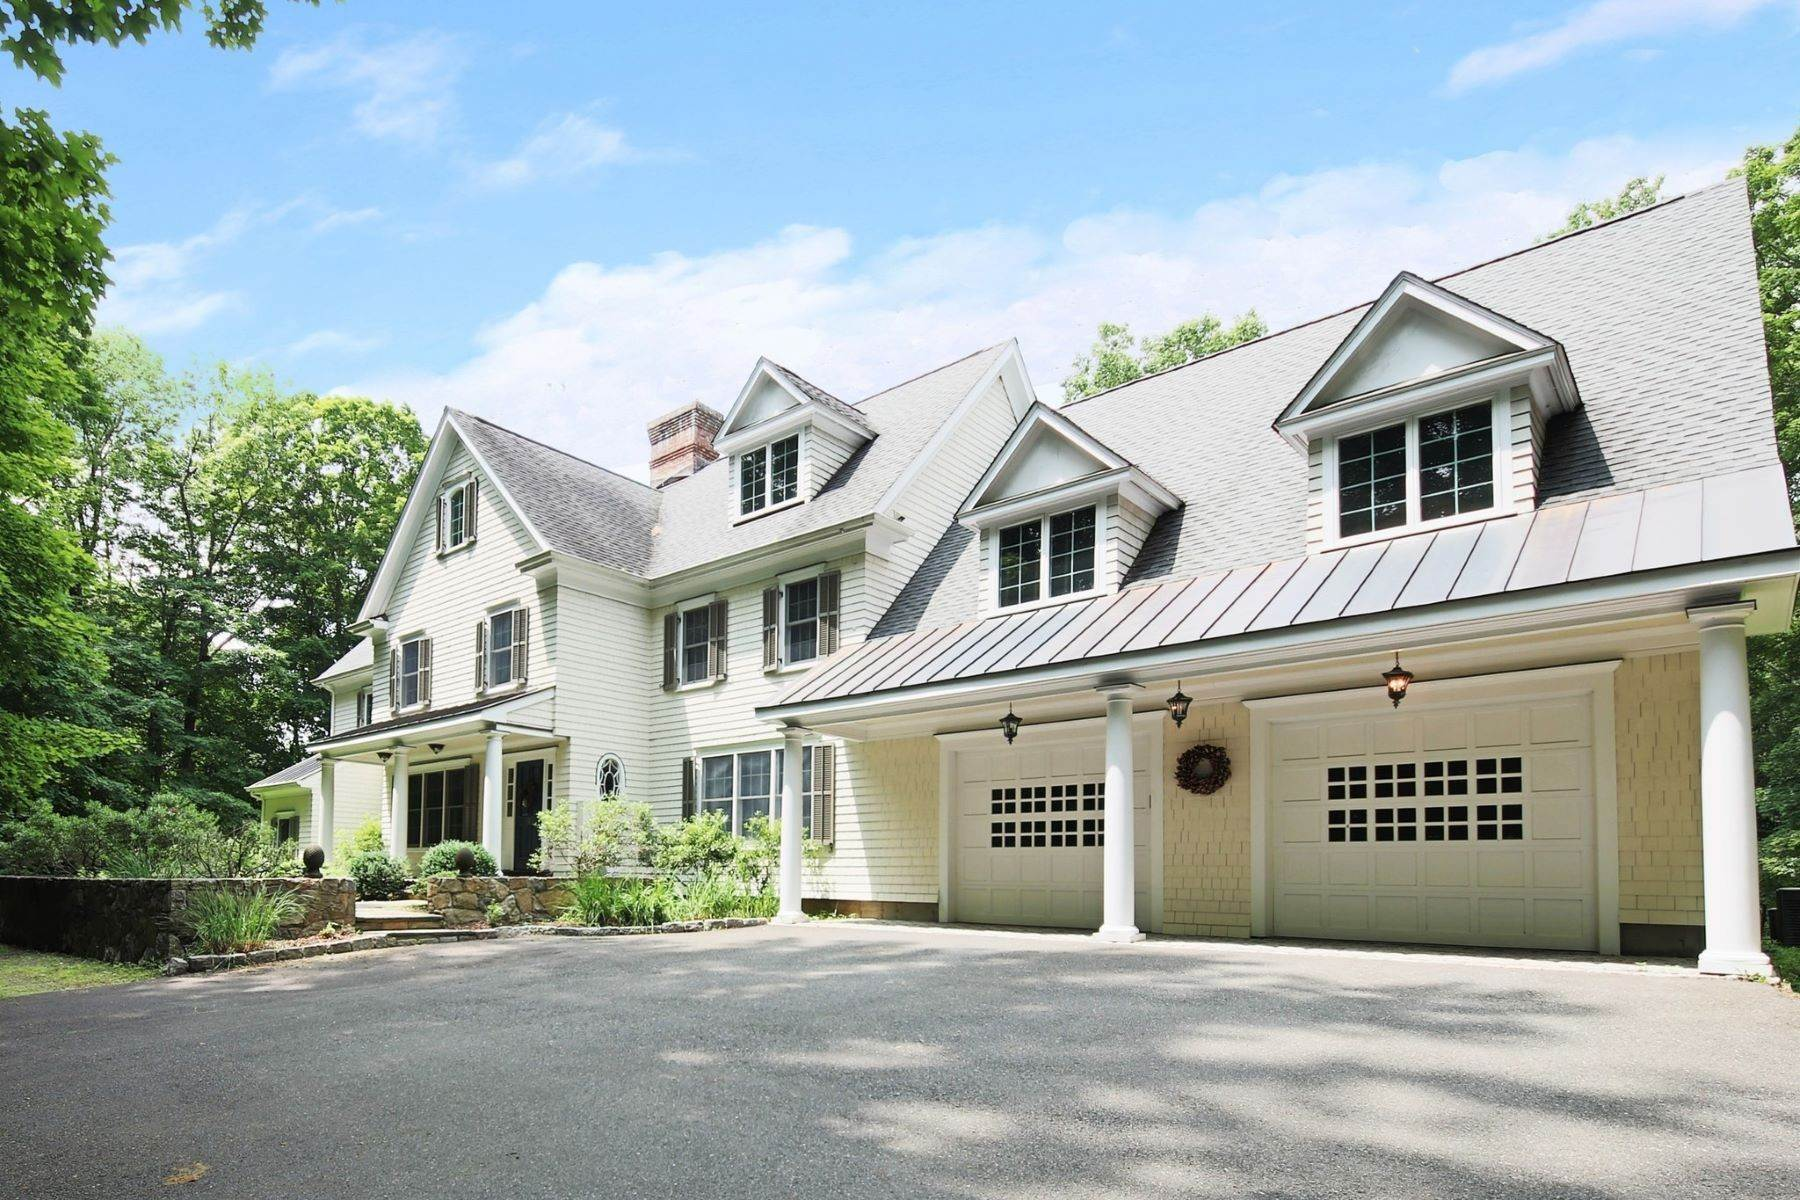 Single Family Homes for Sale at EXQUISITE CUSTOM COLONIAL 91 Golf Lane Ridgefield, Connecticut 06877 United States